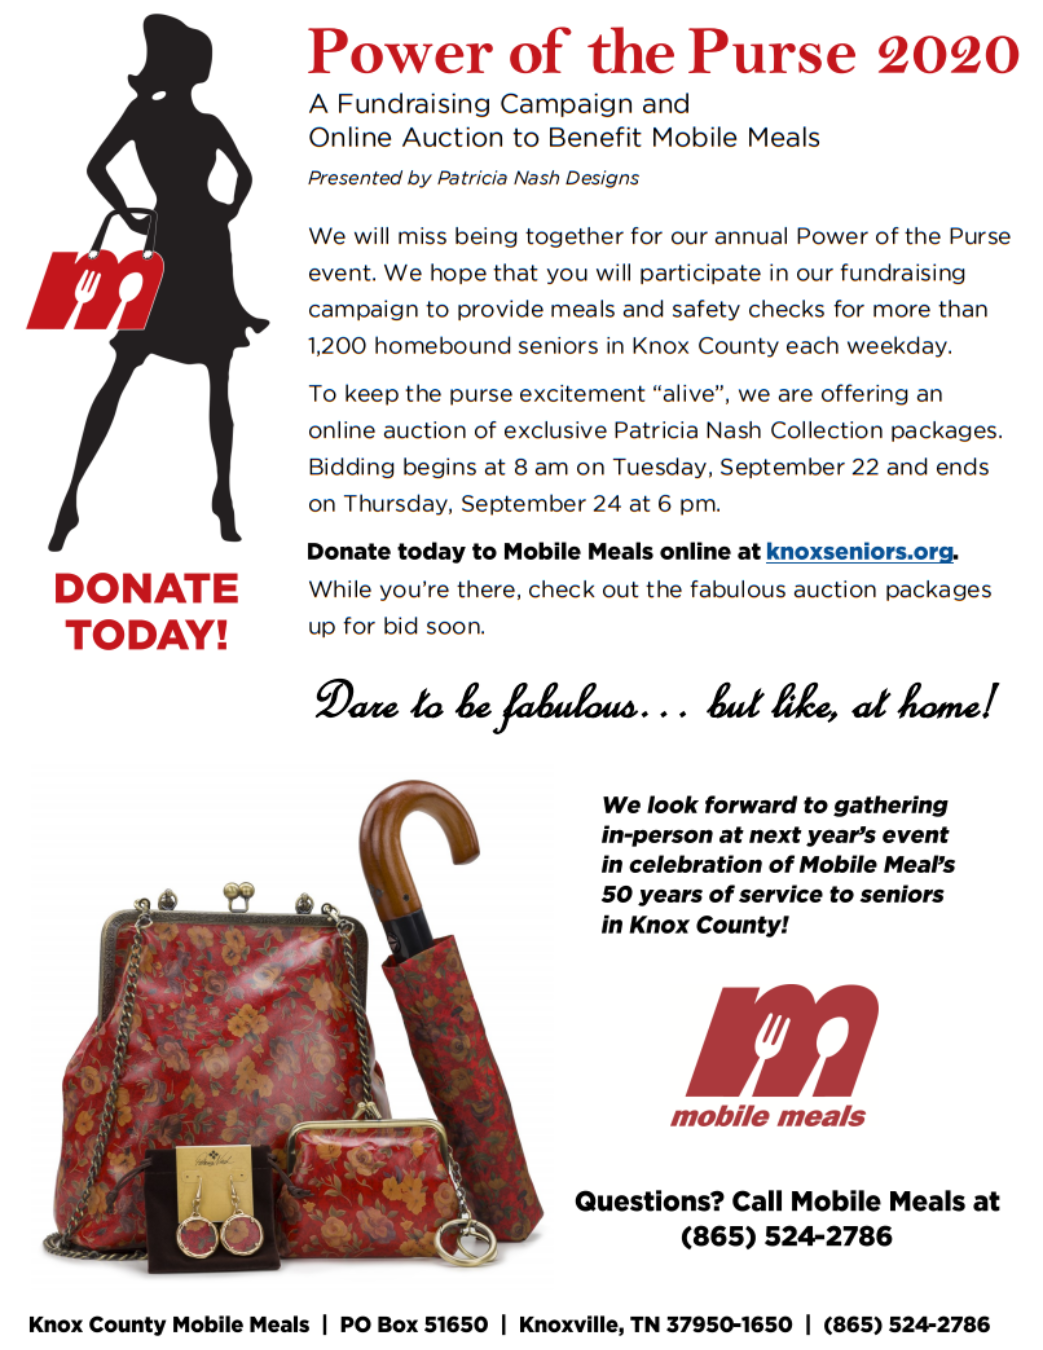 Mobile Meals Power of the Purse Fundraiser